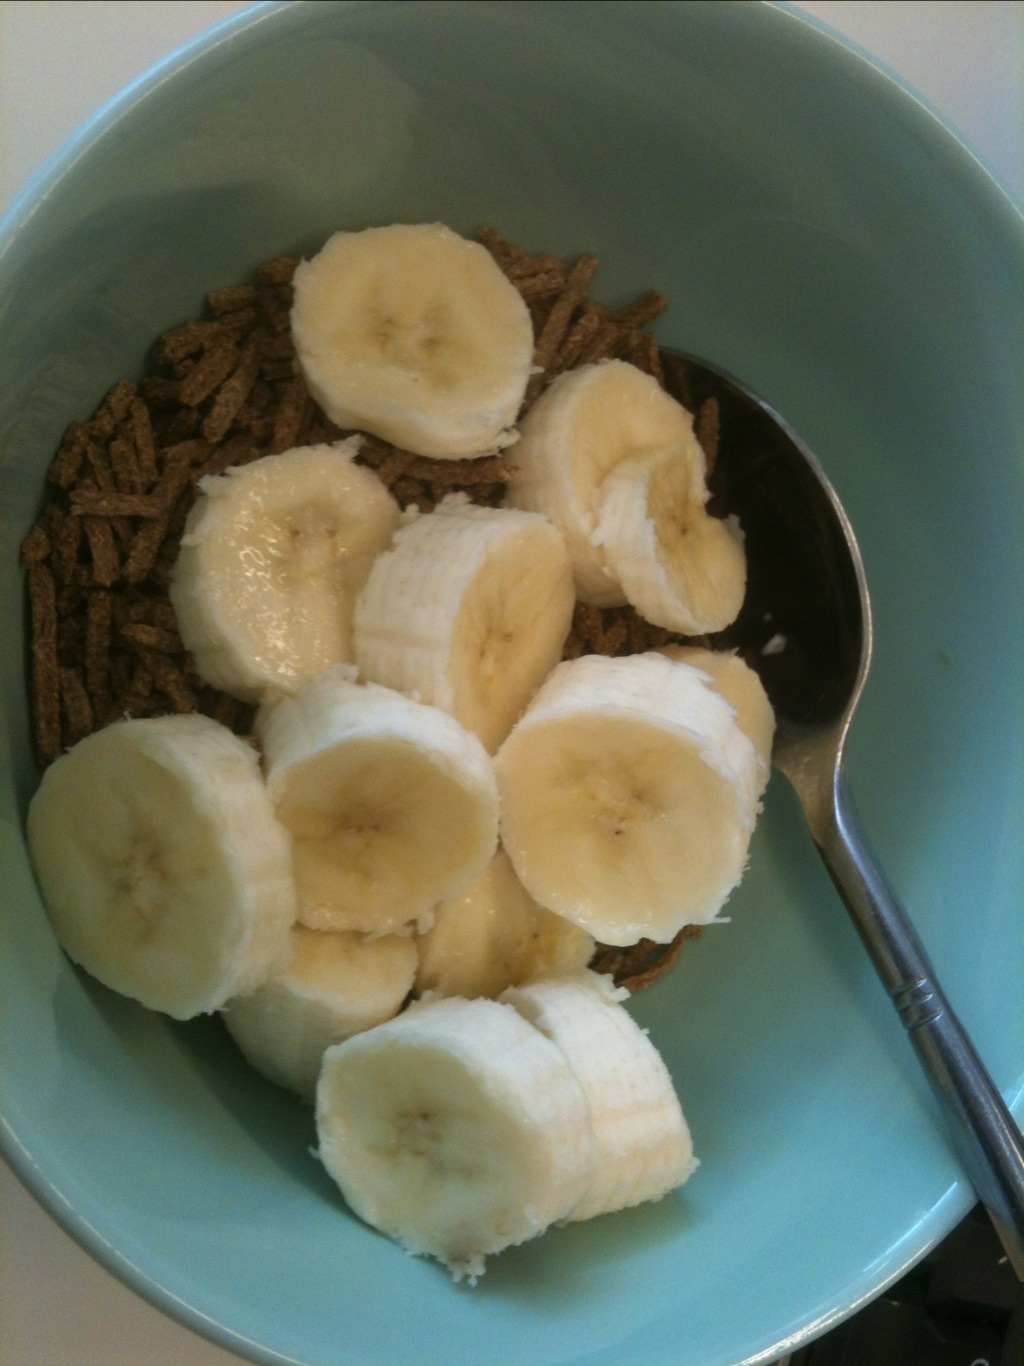 All-bran with banana and milk